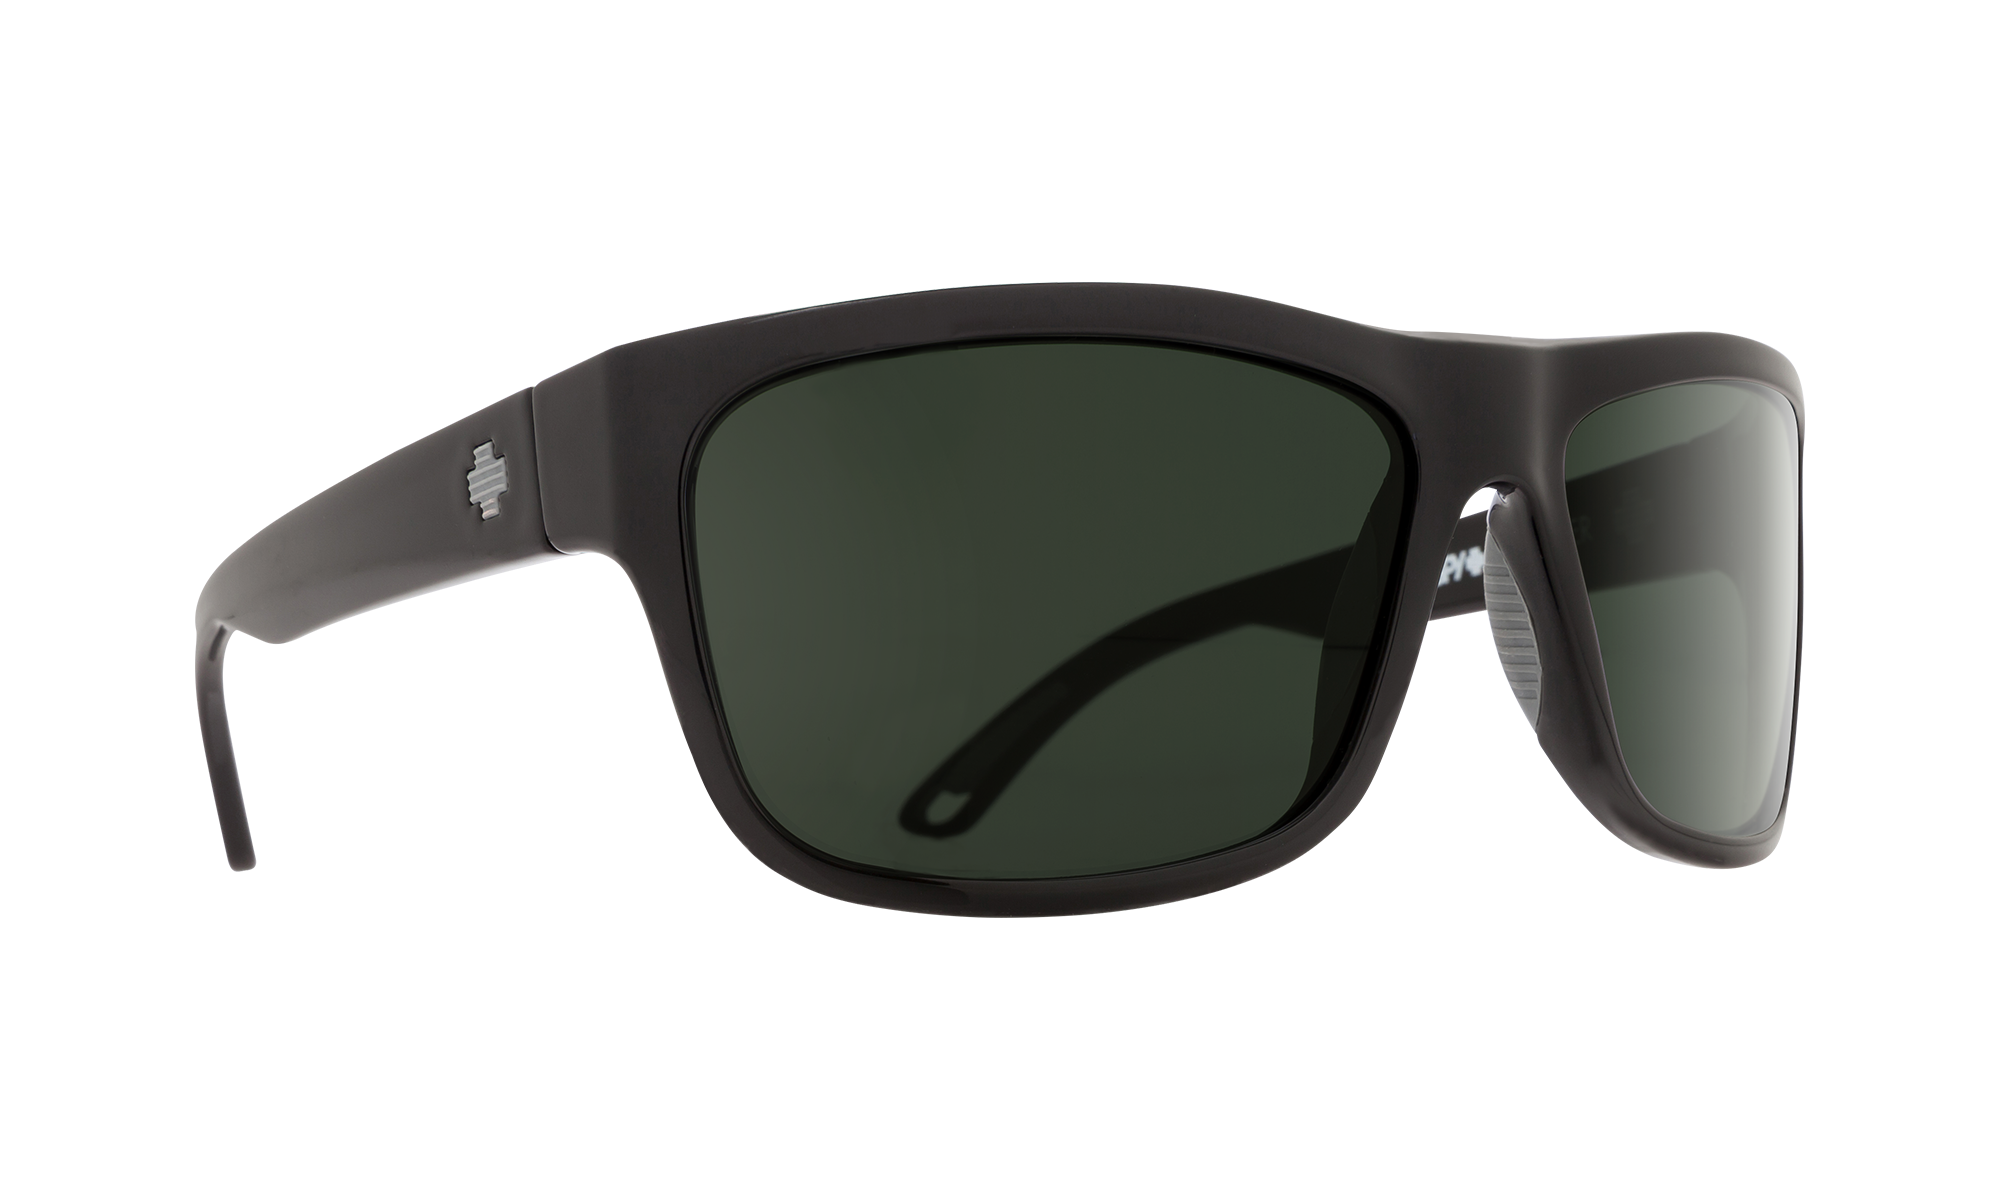 3ddb86854646d Angler Sunglasses - Comfortable Fit